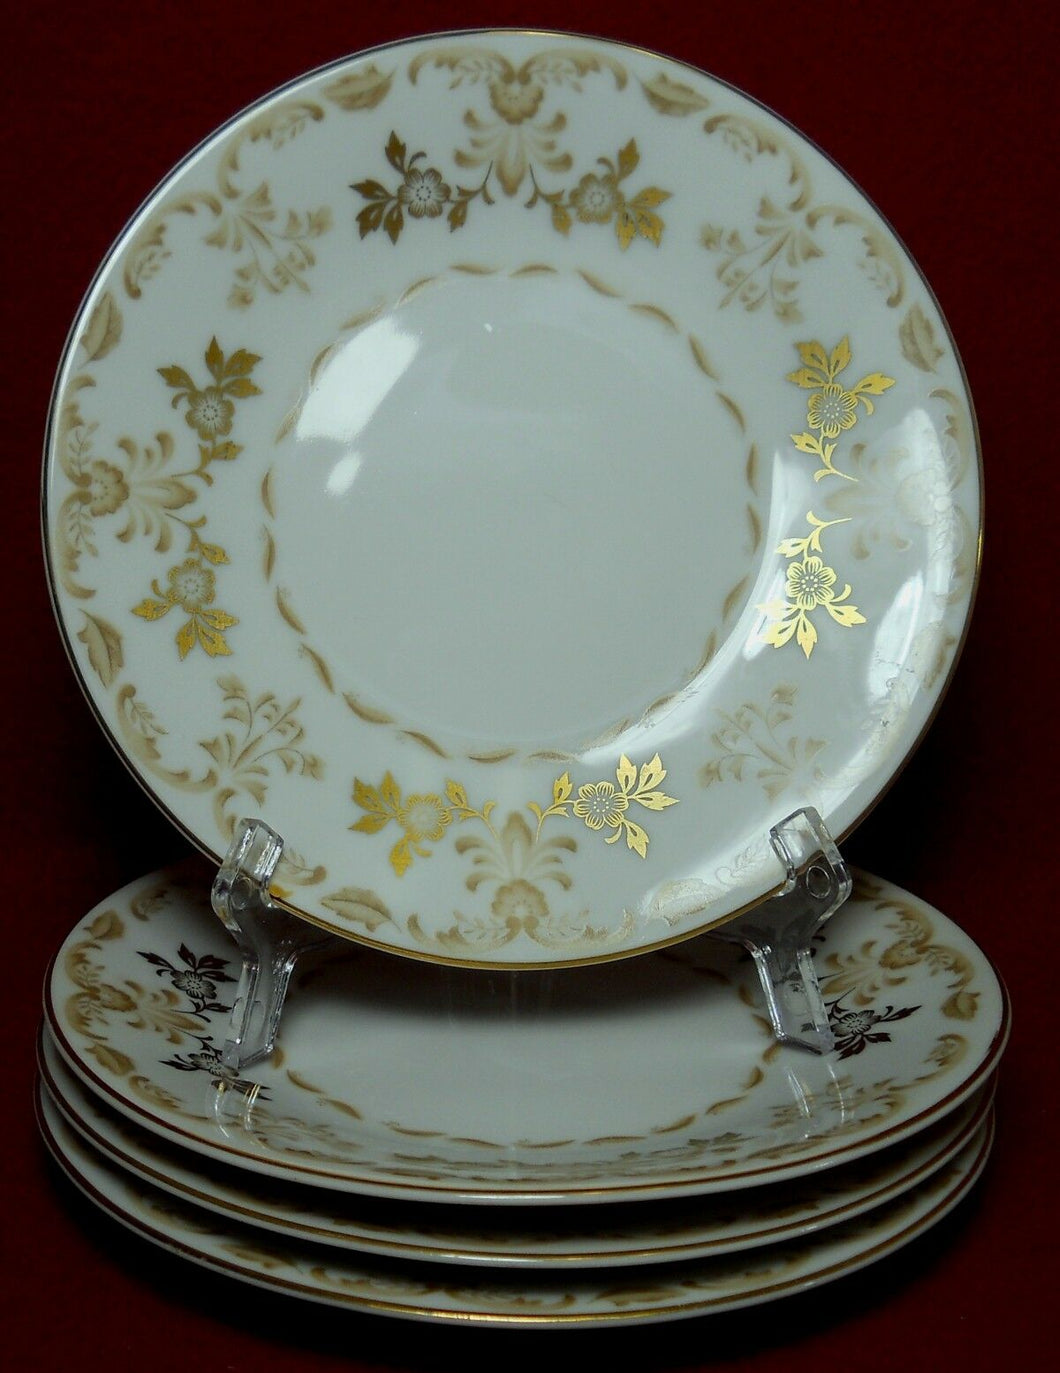 HARMONY HOUSE china CLASSIQUE GOLD pattern Bread Plate - Set of Four (4) - 6